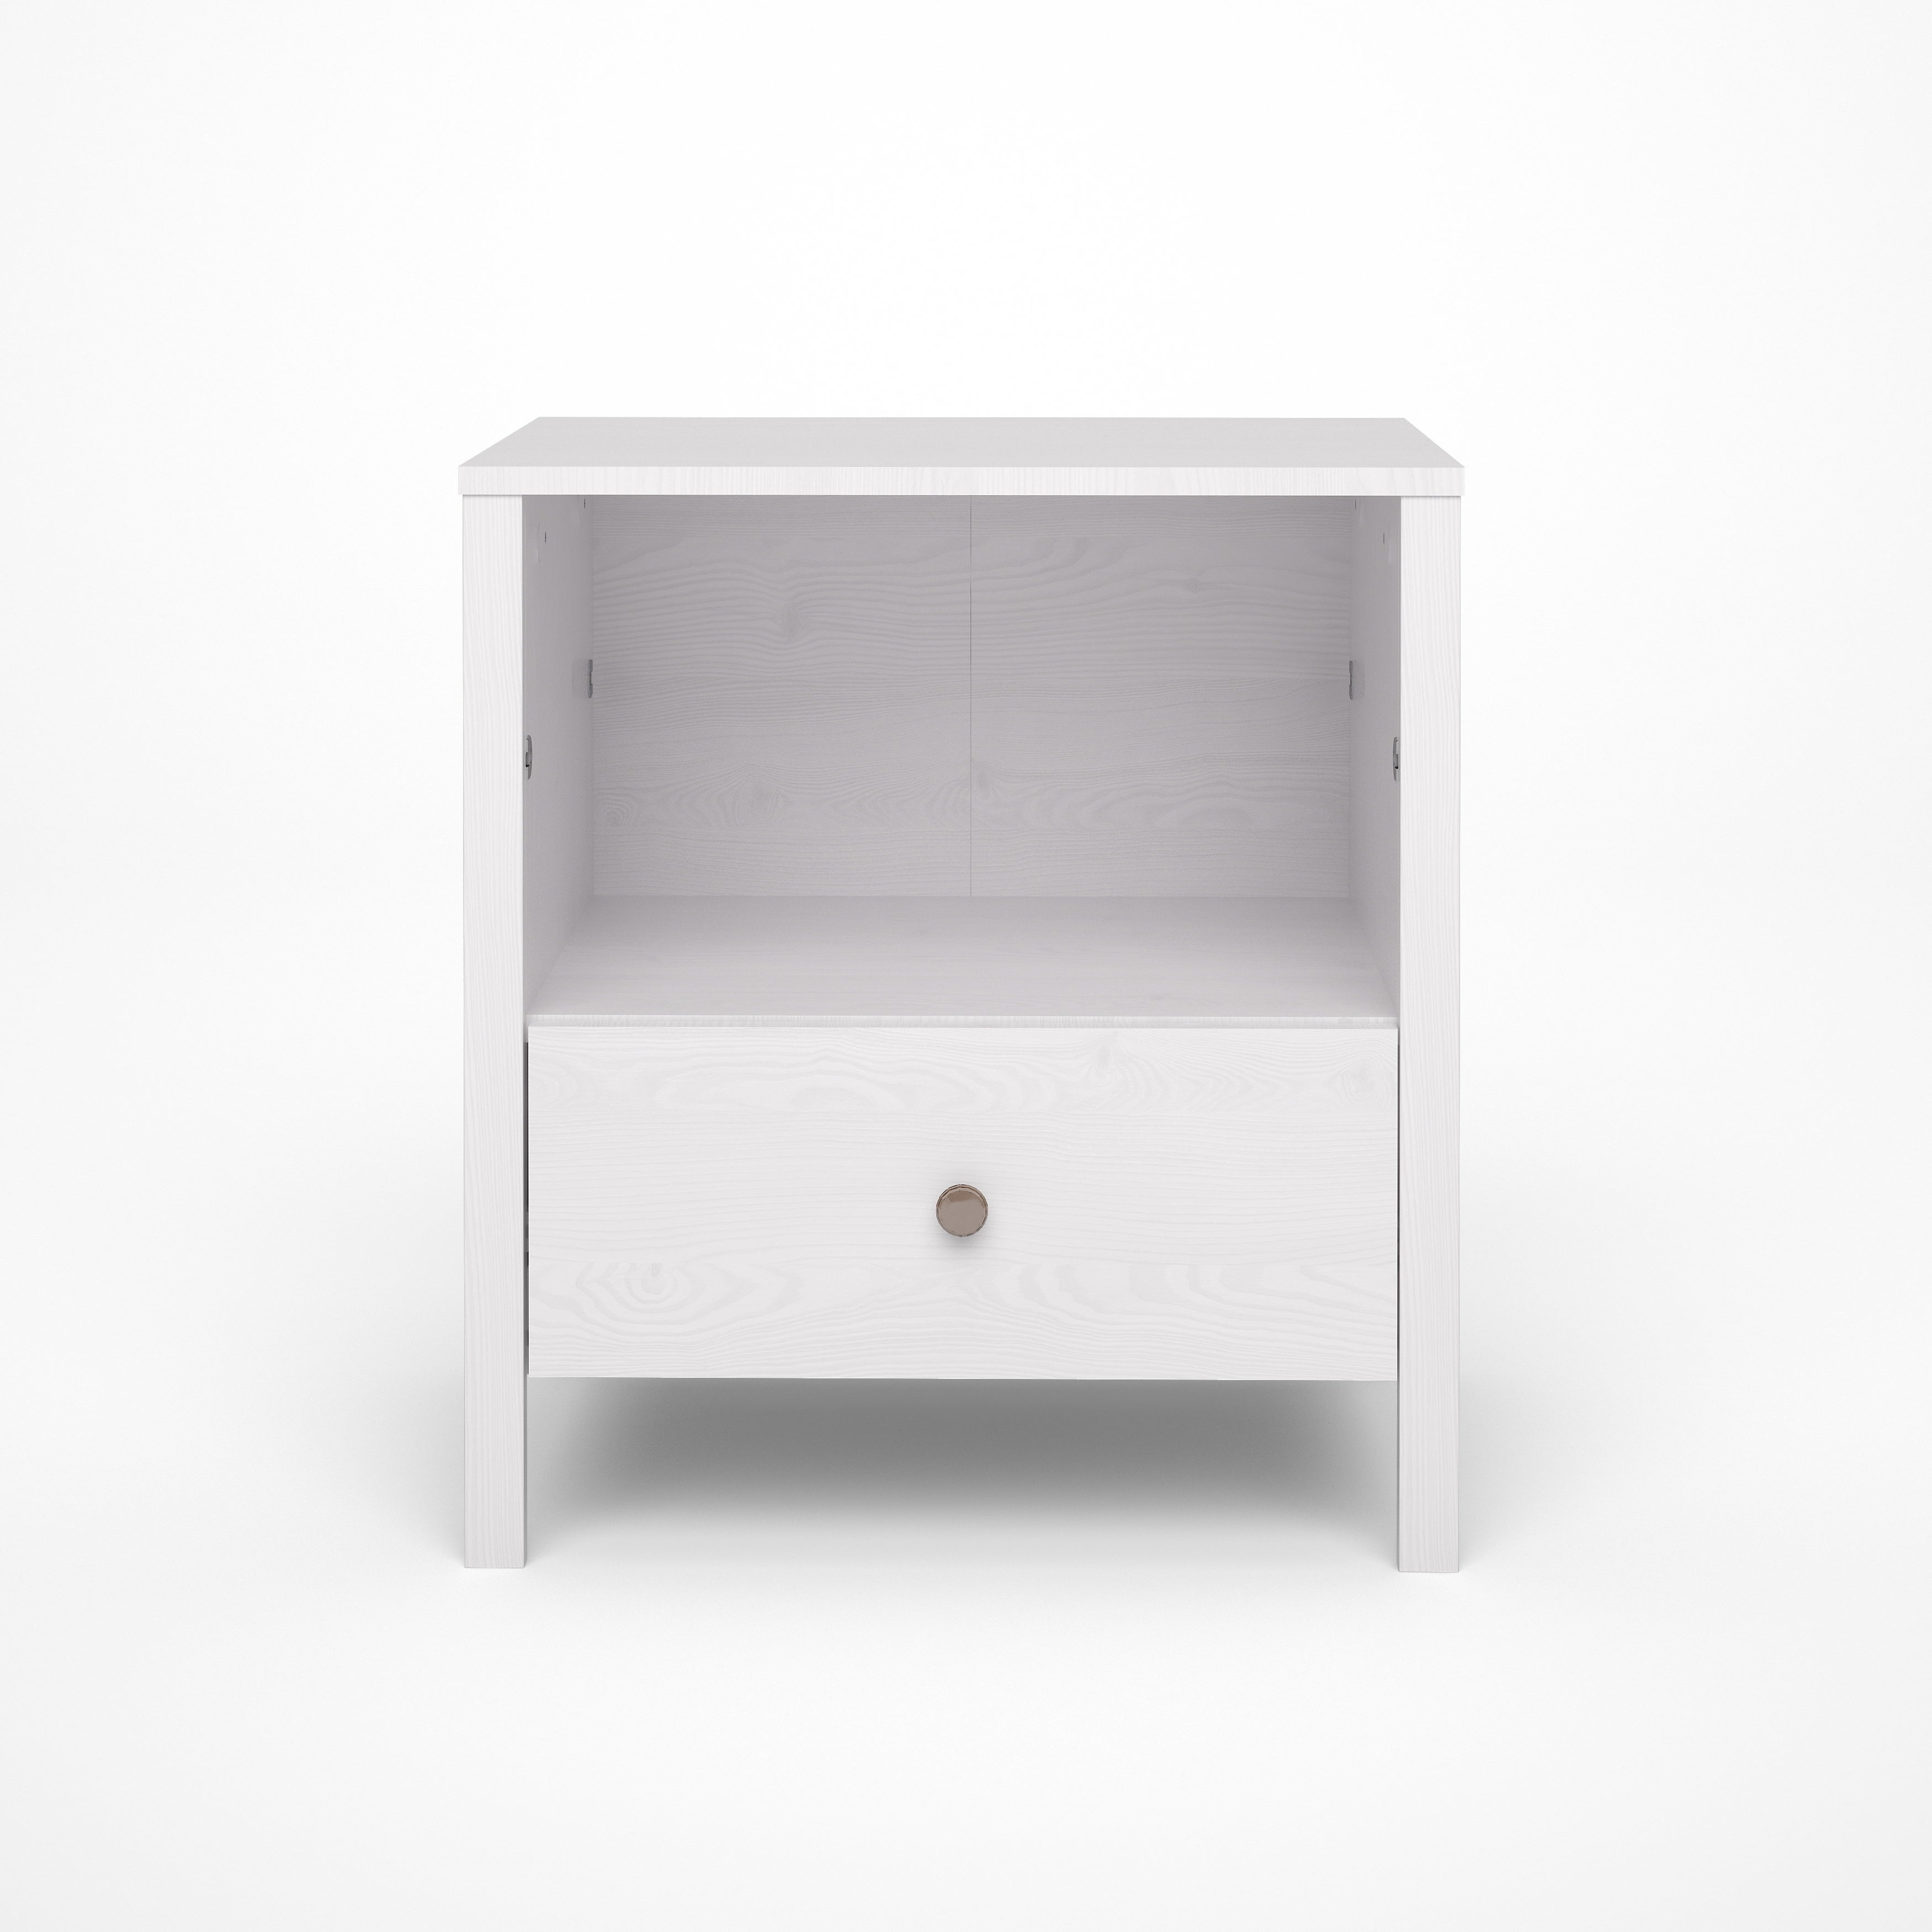 TVILUM-SCANBIRK Seattle White Wash Wood Grain 1-drawer Ni...